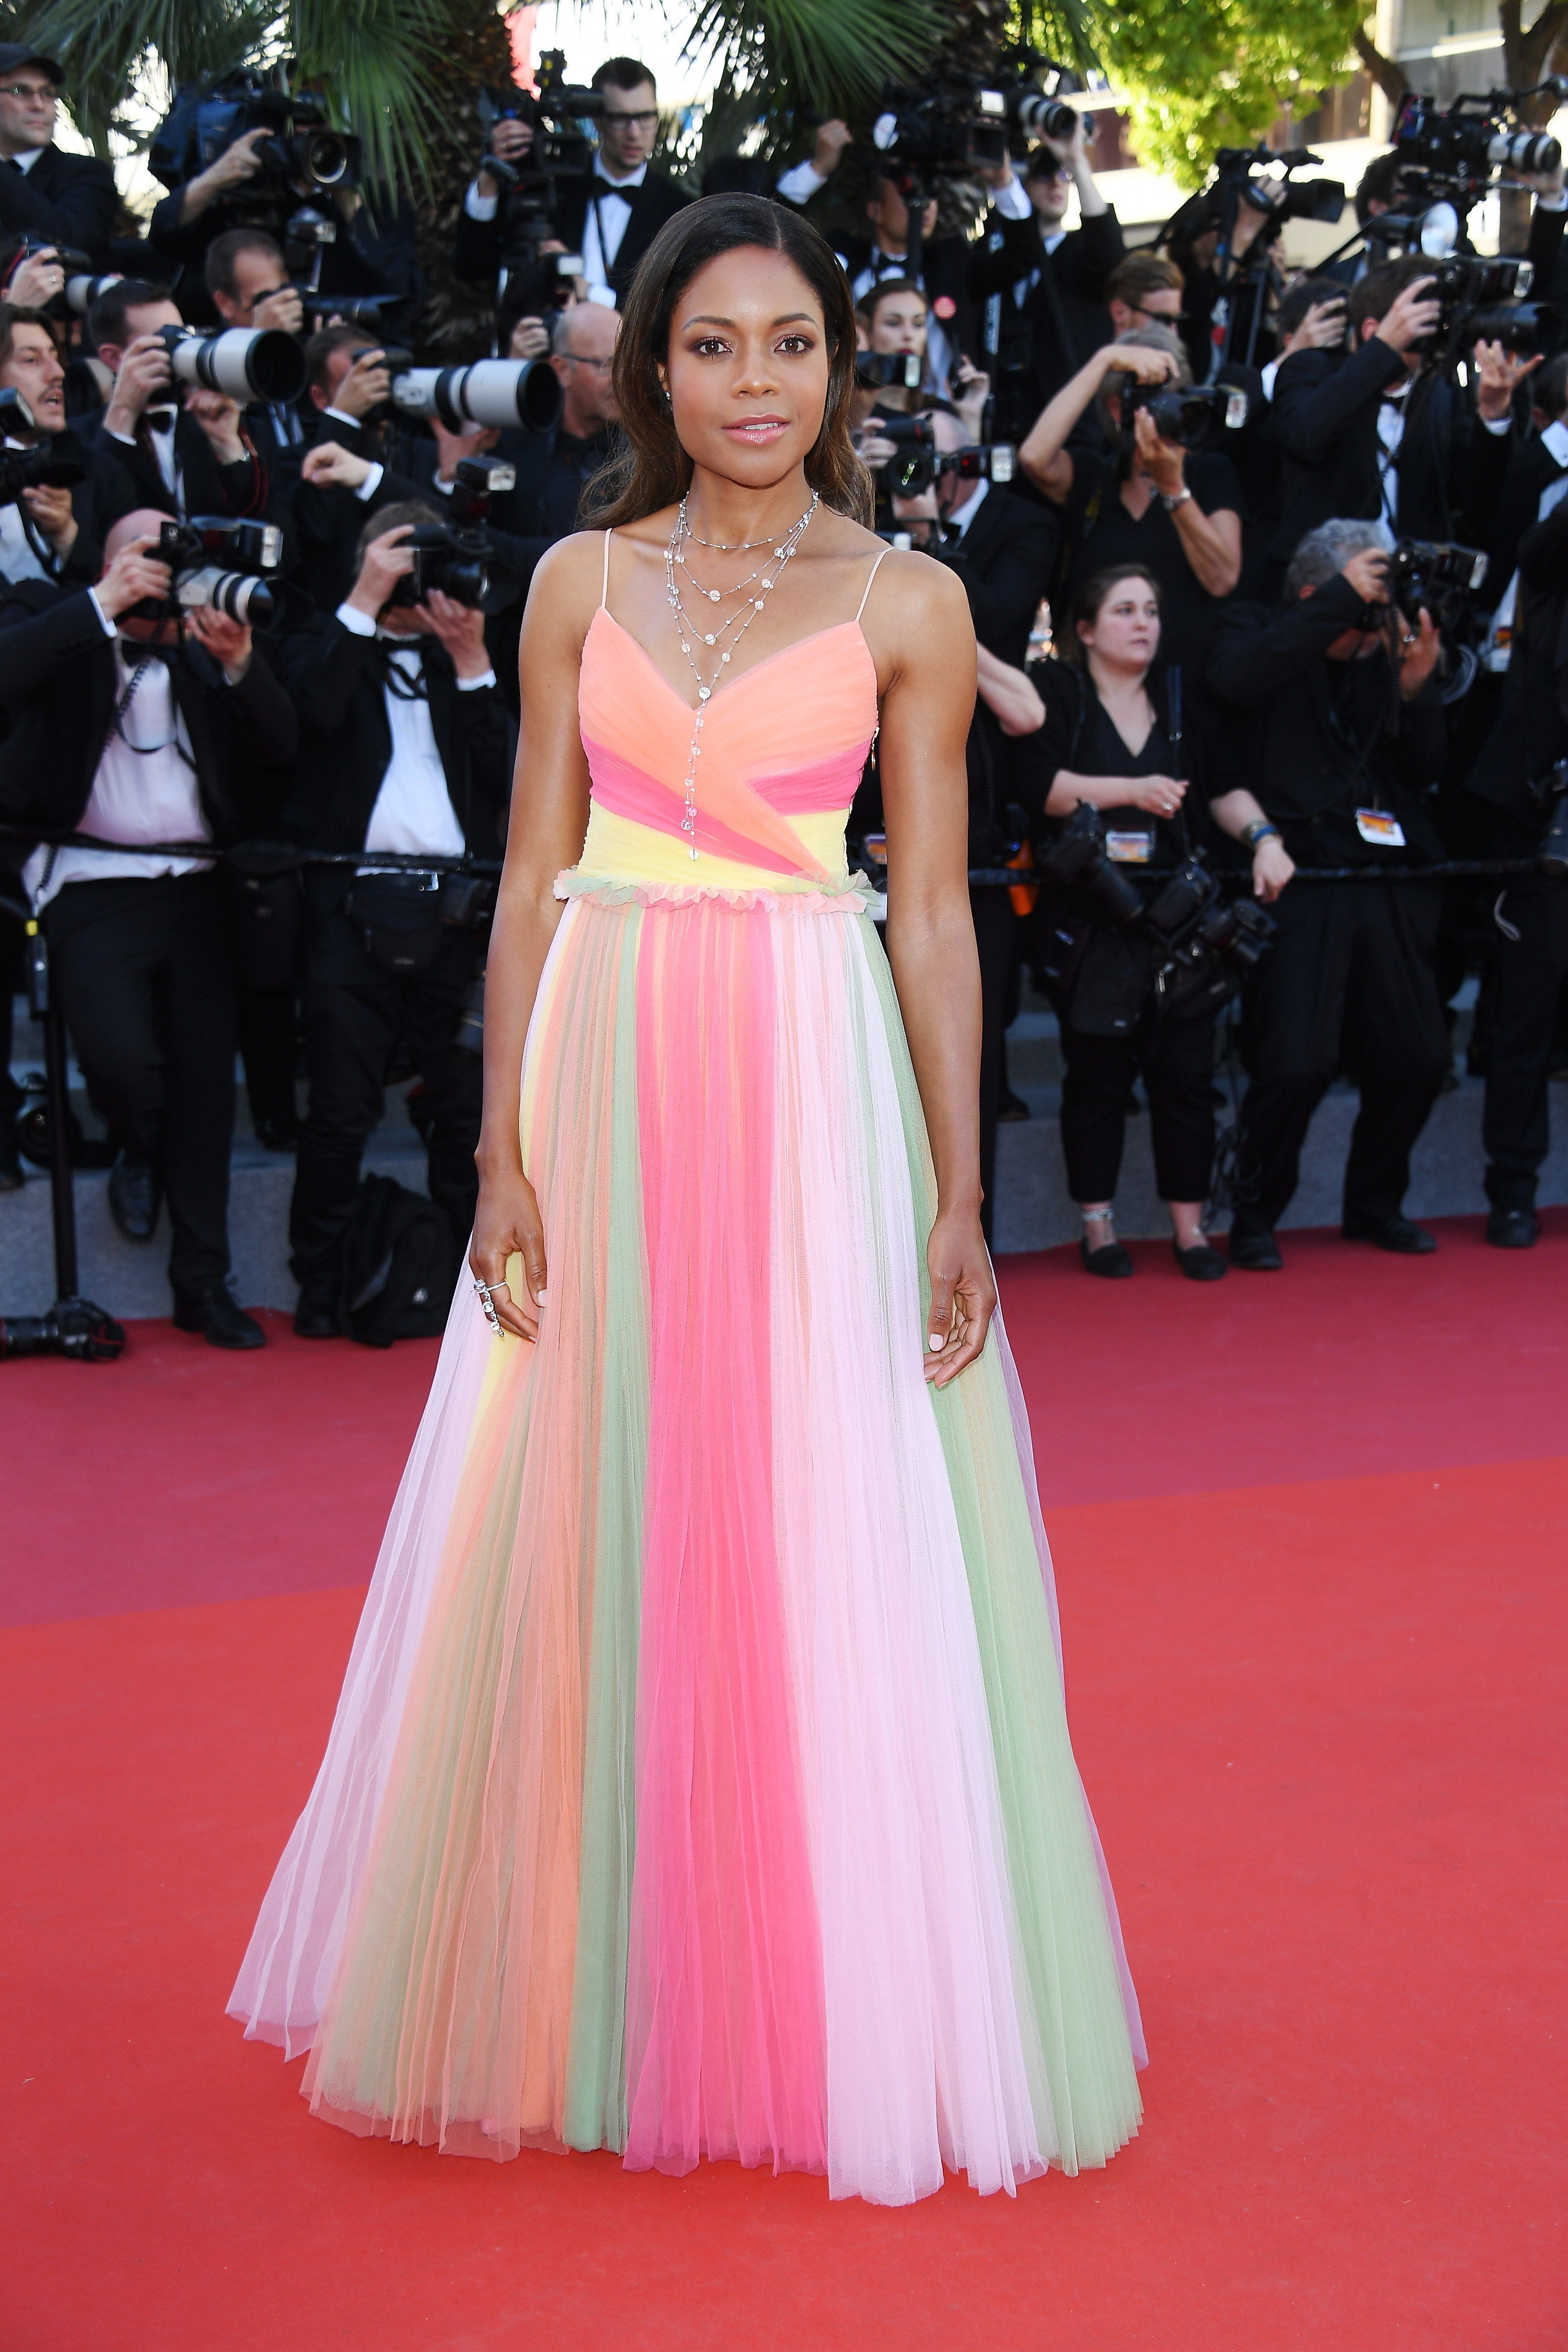 See Every Red Carpet Look From the 2017 Cannes Film Festival